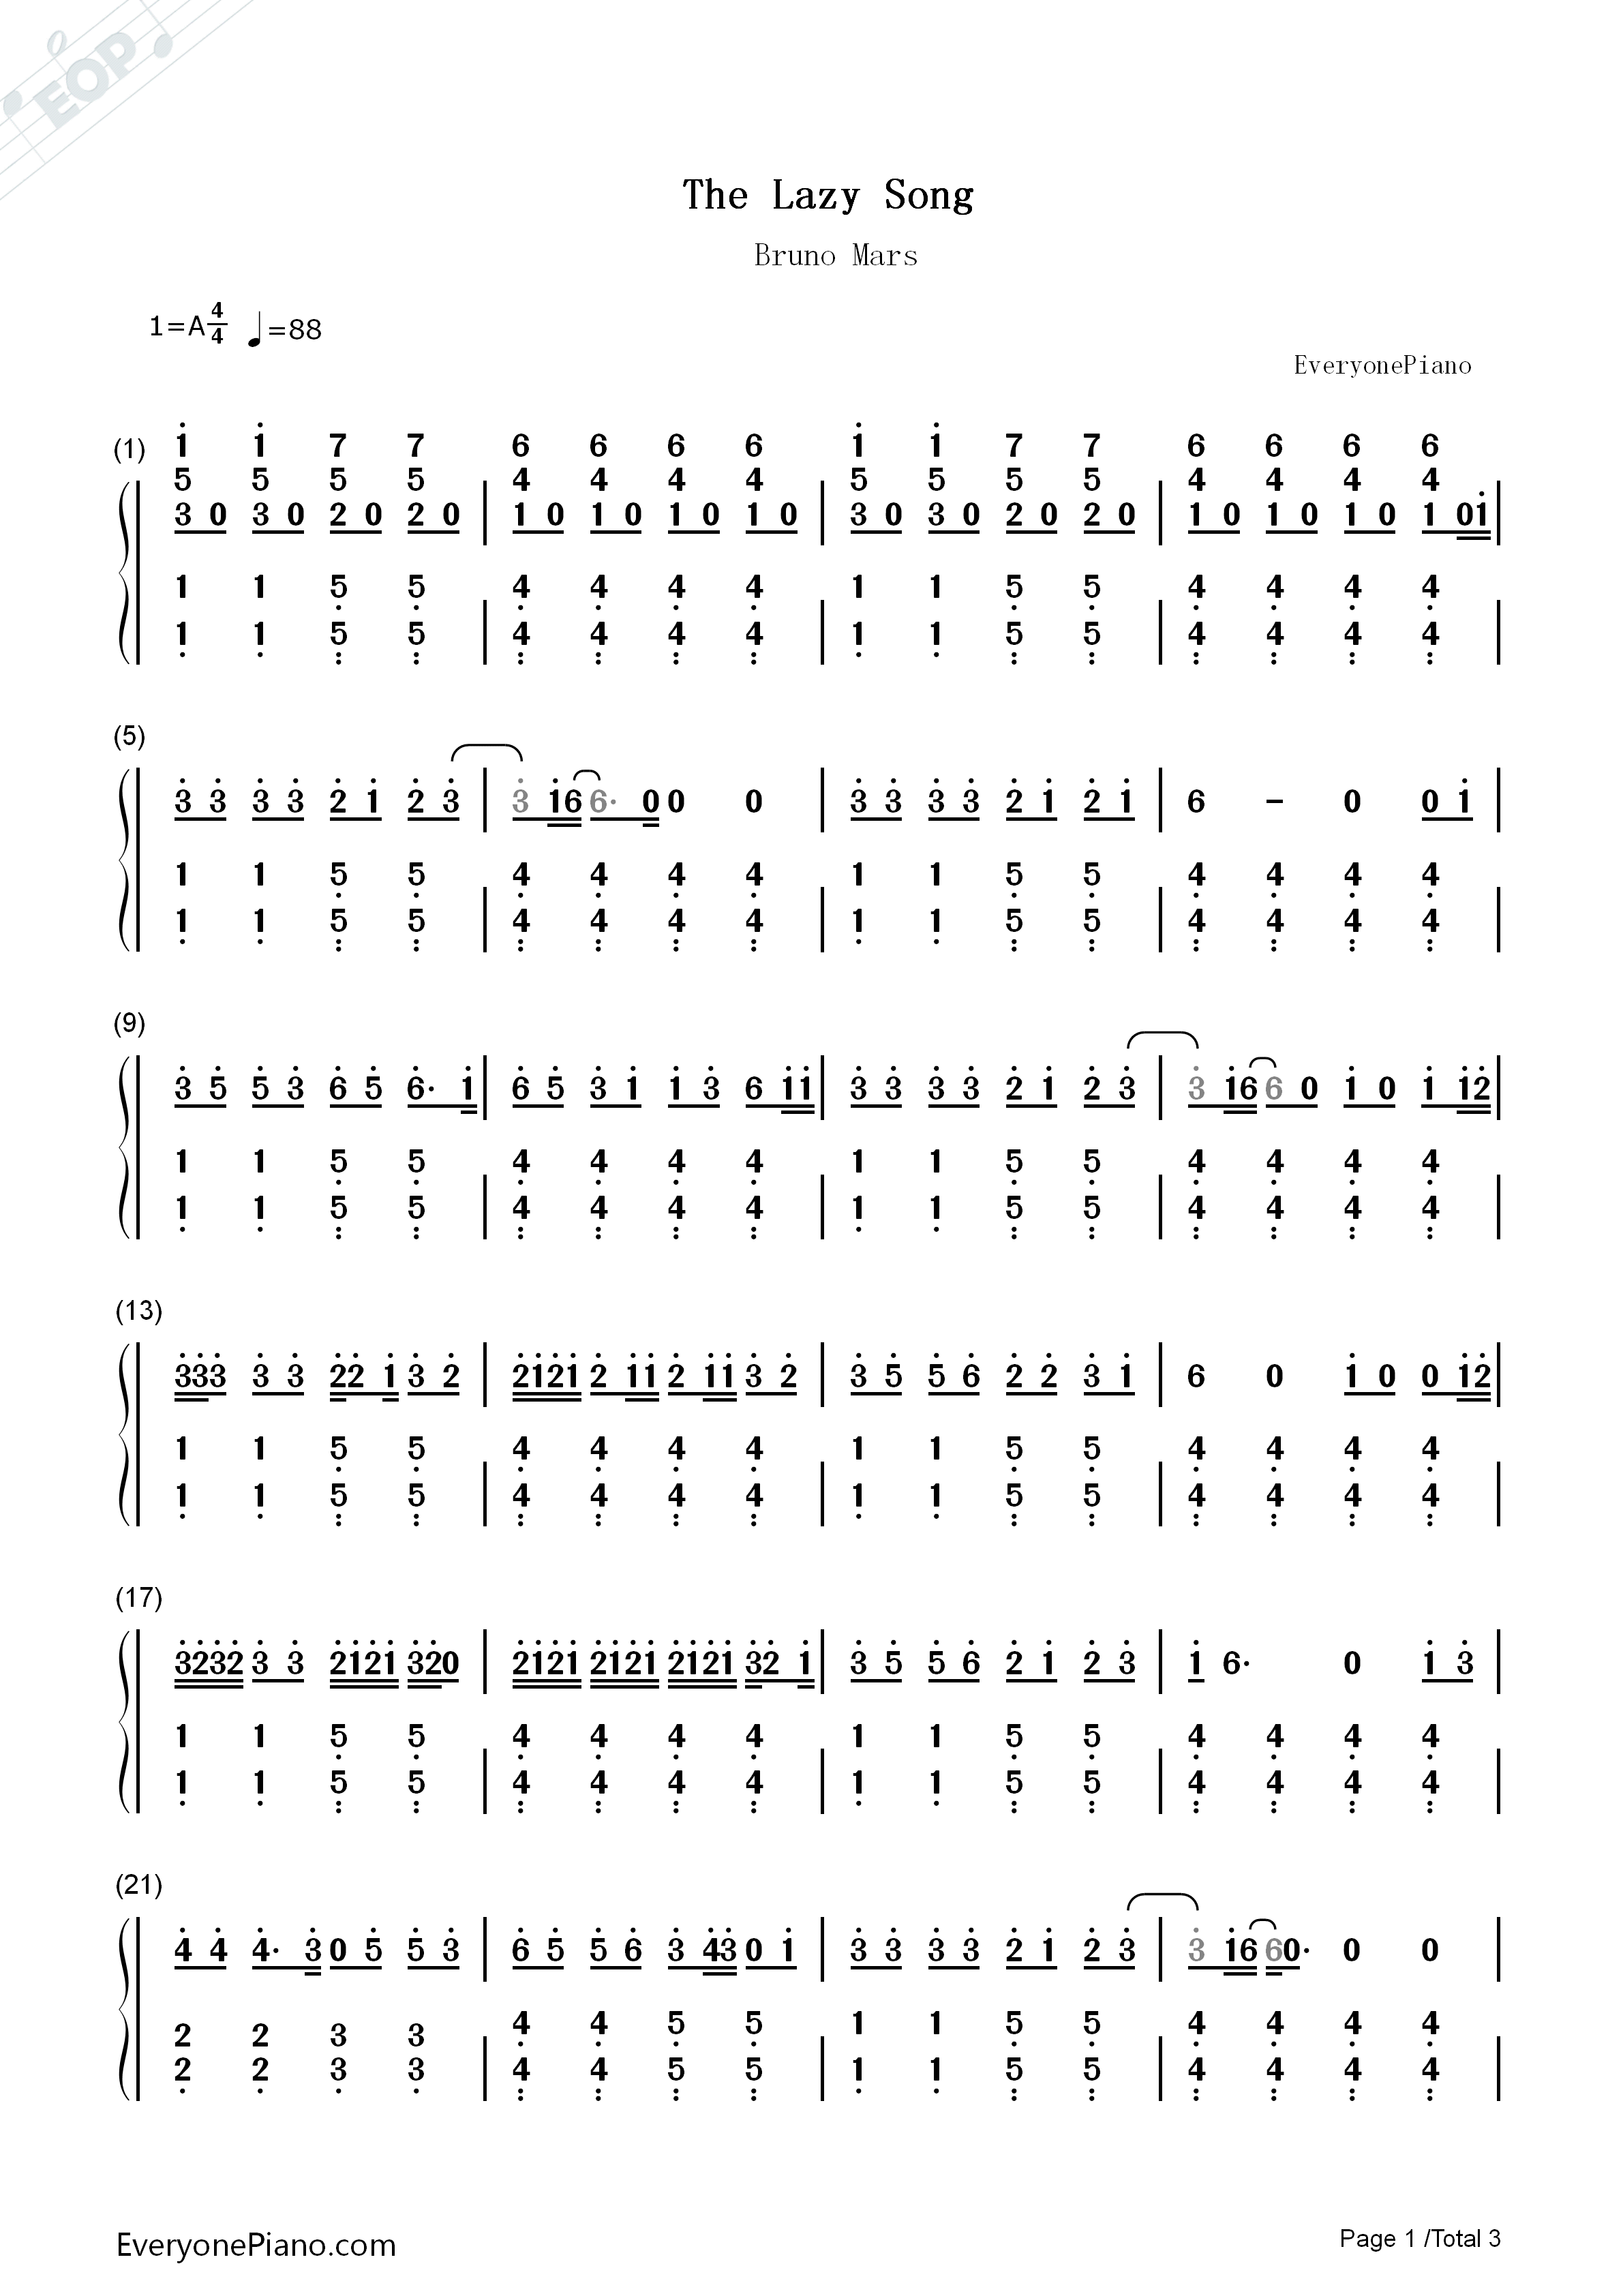 The lazy song bruno mars numbered musical notation preview 1 free listen now print sheet the lazy song bruno mars numbered musical notation preview 1 hexwebz Images